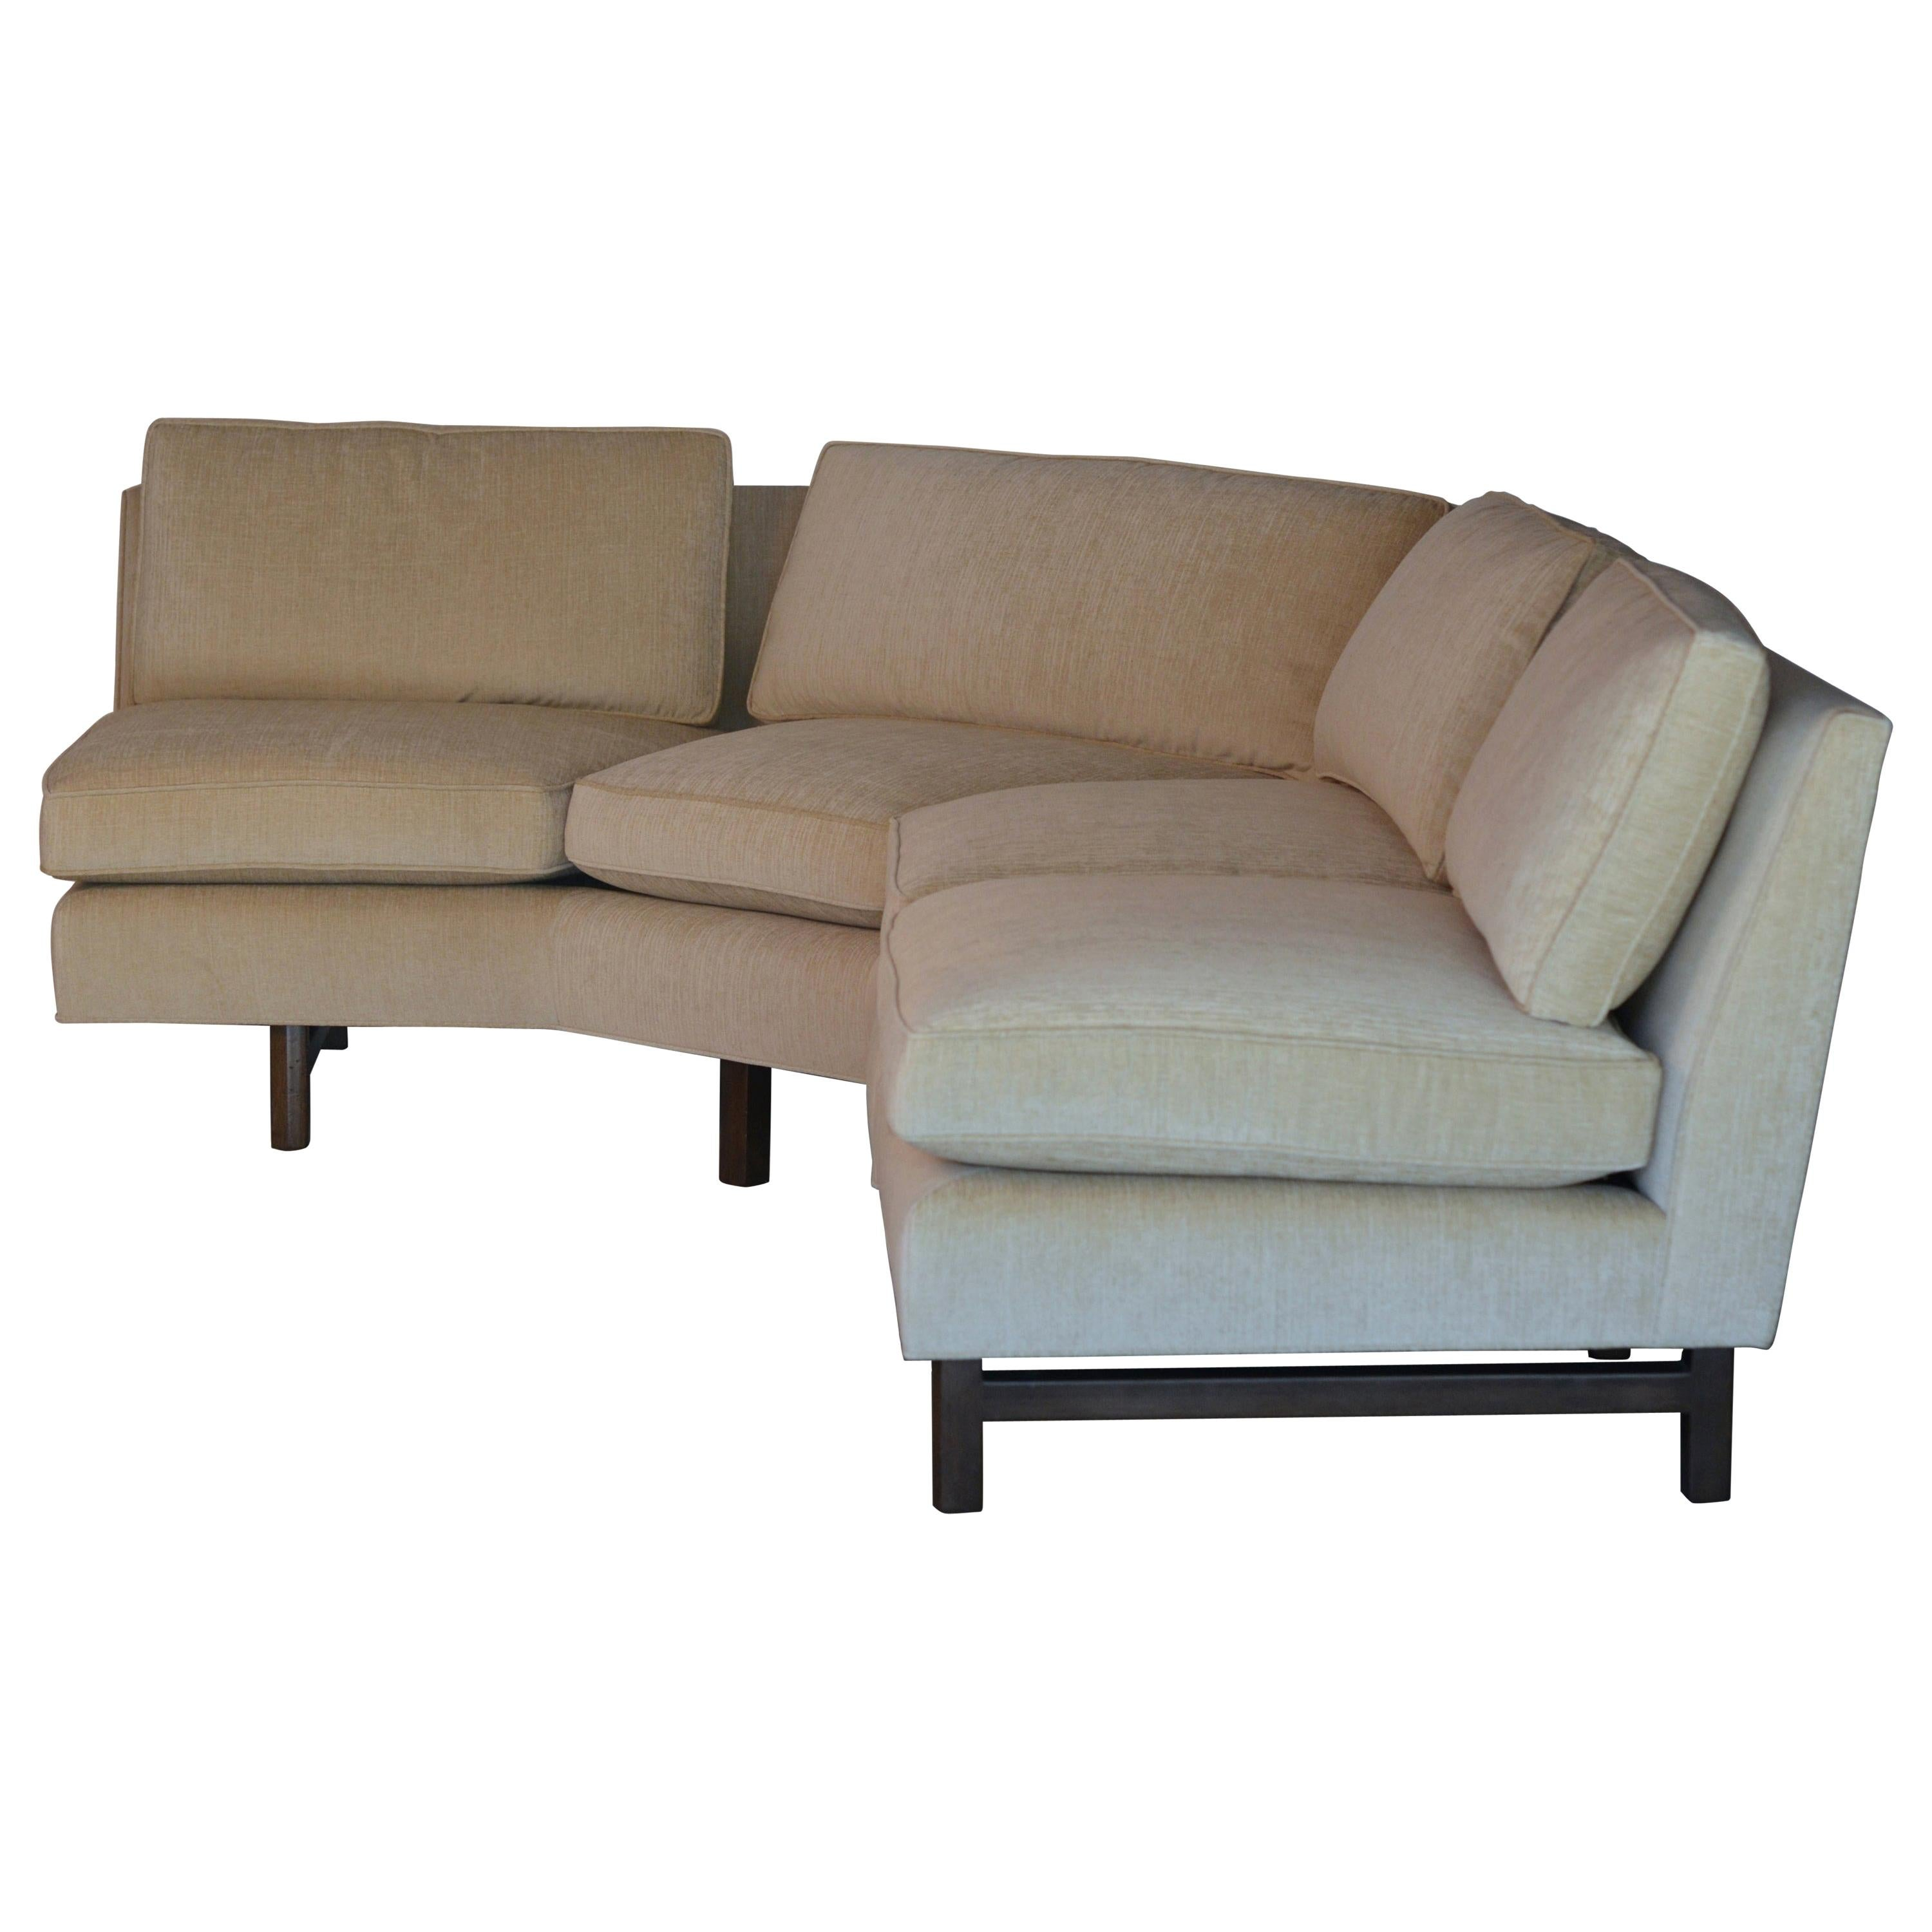 Impeccable Reupholstered Dunbar Sectional Sofa by Edward Wormley